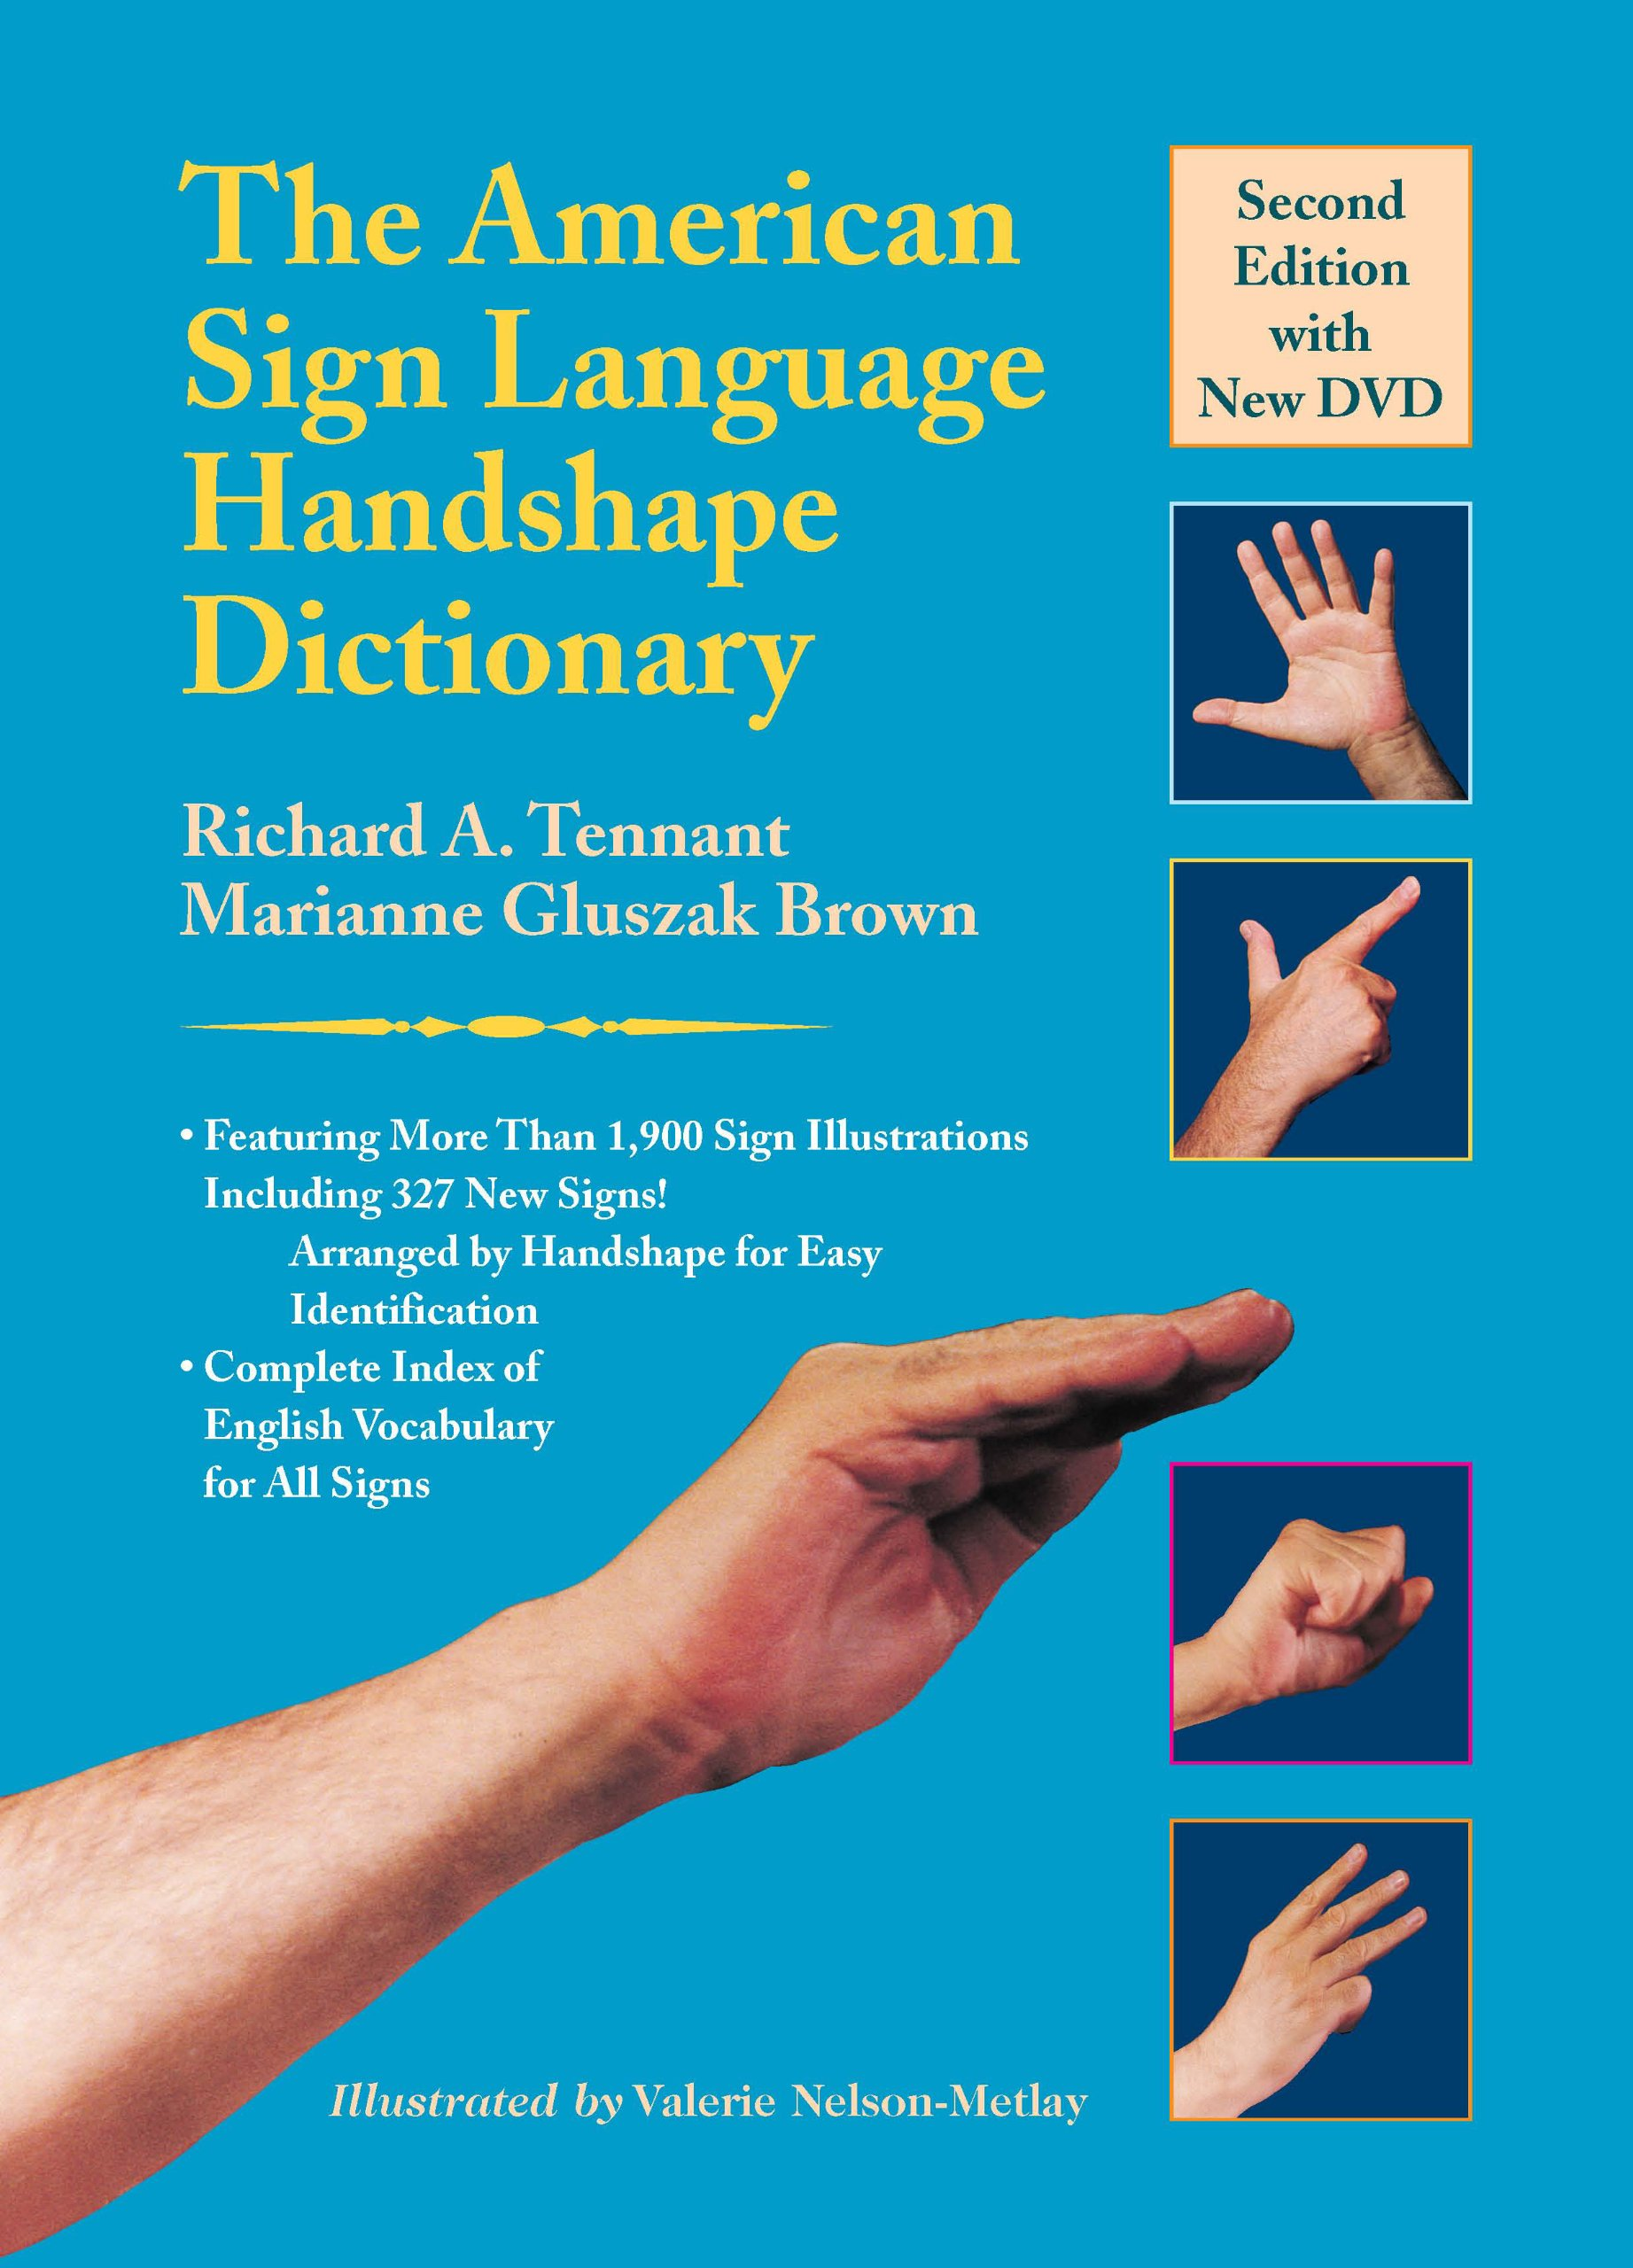 The American Sign Language Handshape Dictionary by Harris Communications